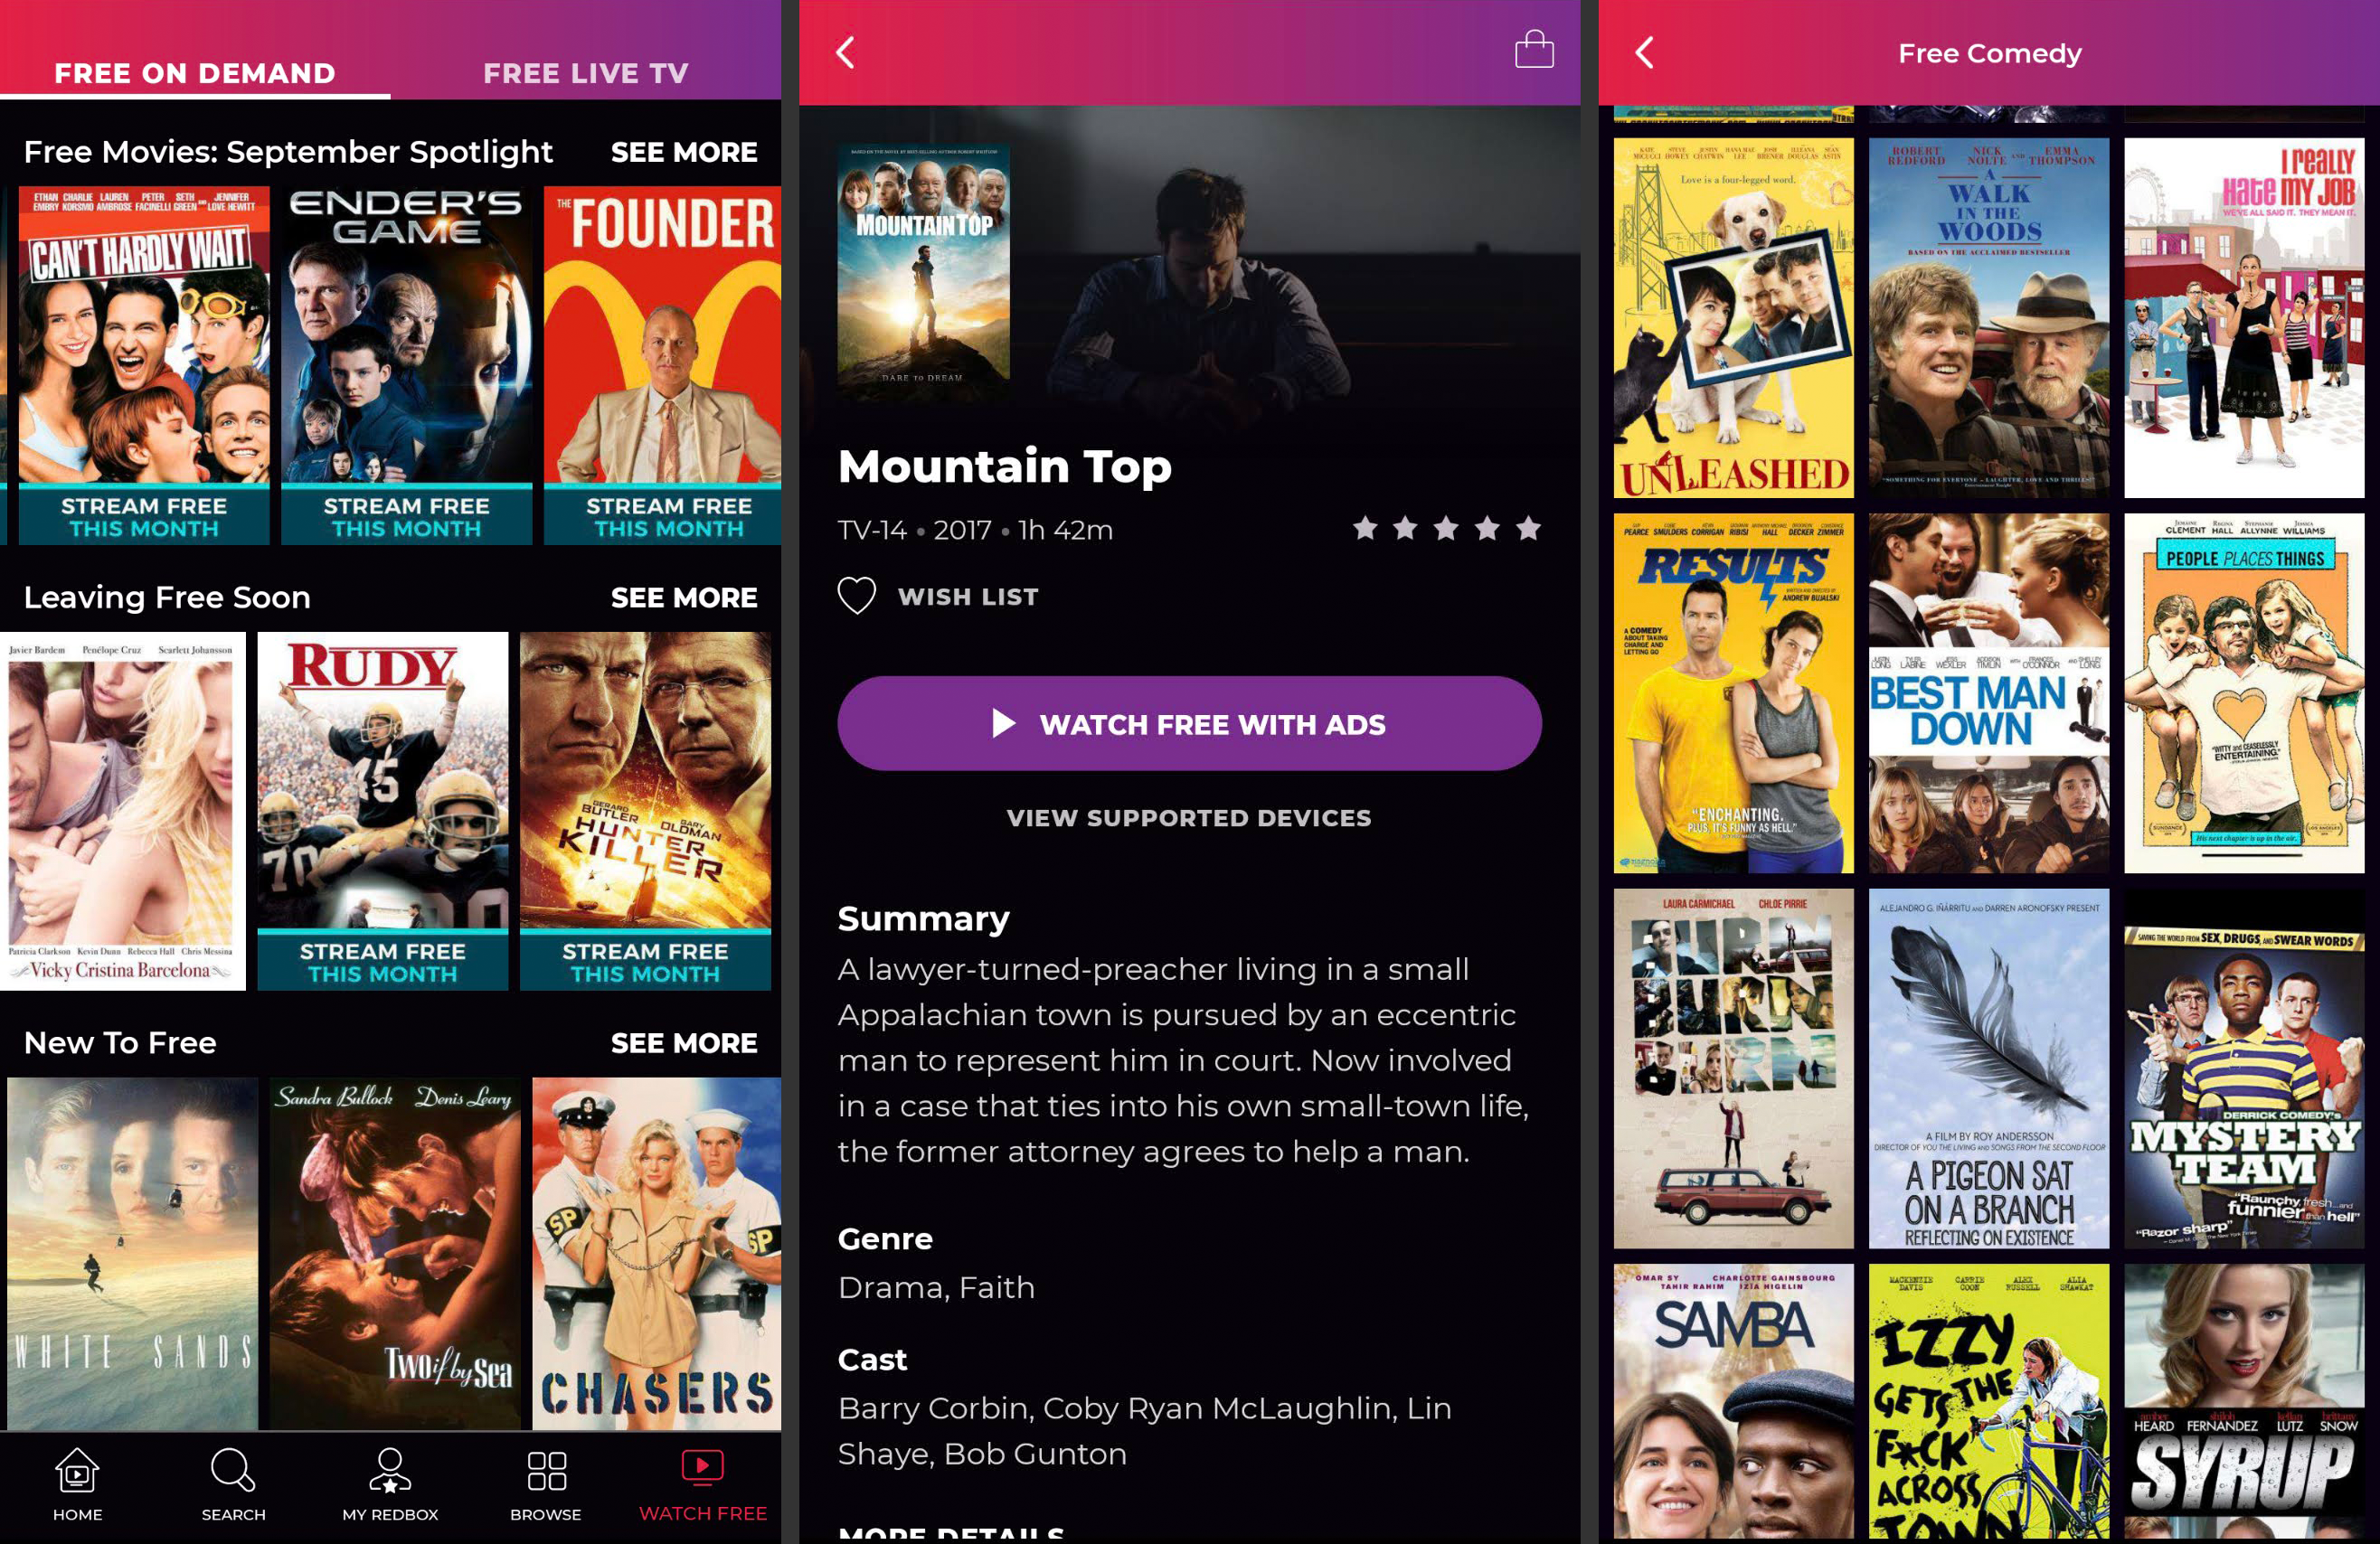 Redbox's free movie app for Android